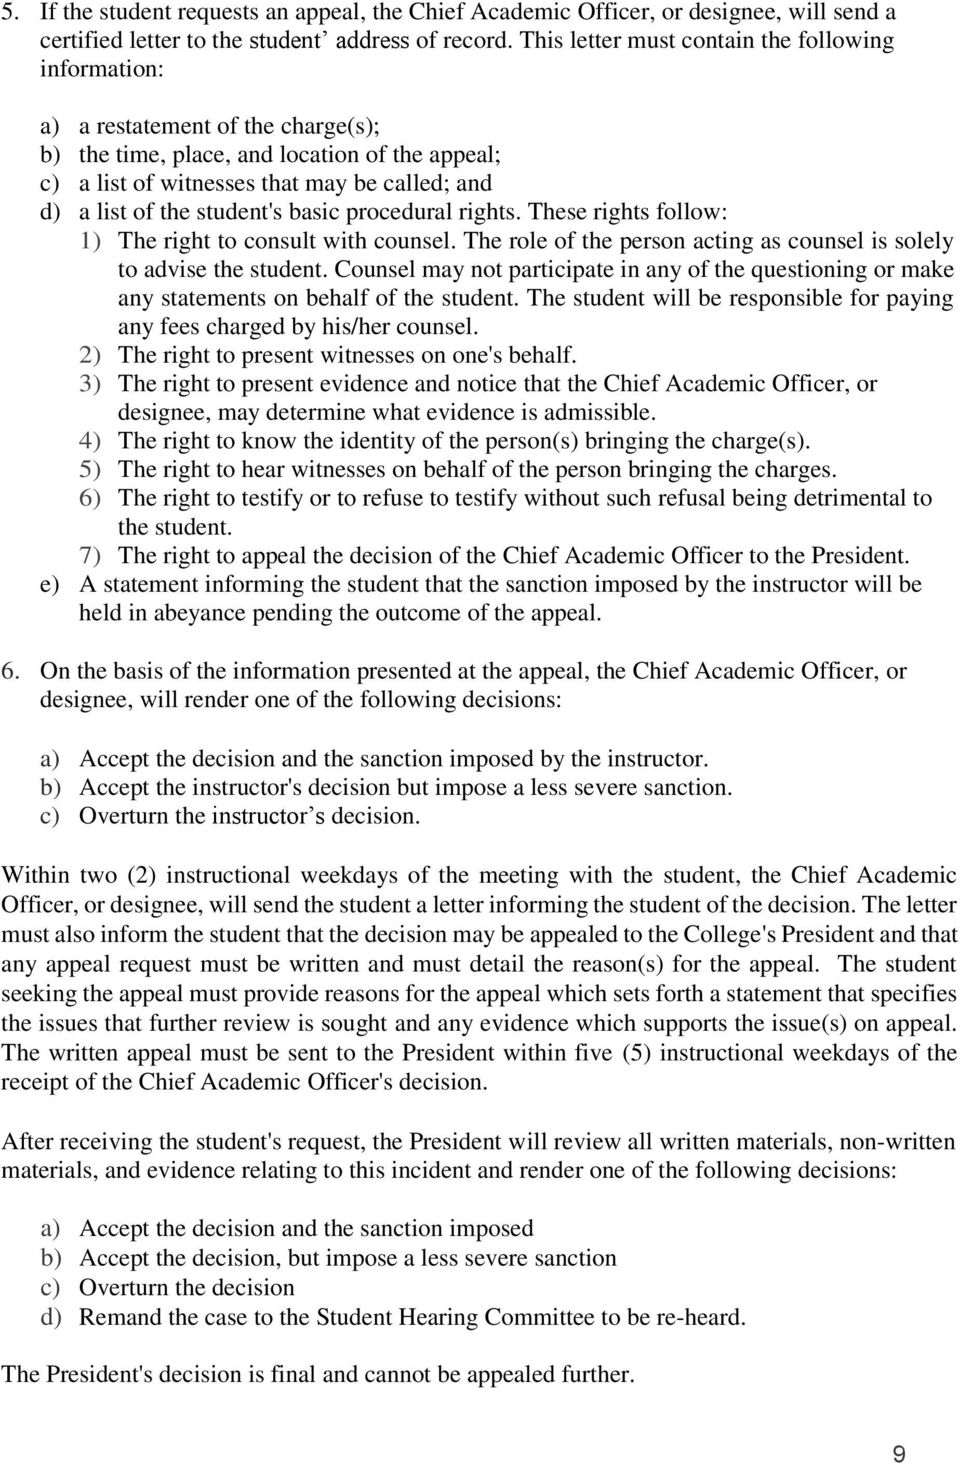 student's basic procedural rights. These rights follow: 1) The right to consult with counsel. The role of the person acting as counsel is solely to advise the student.